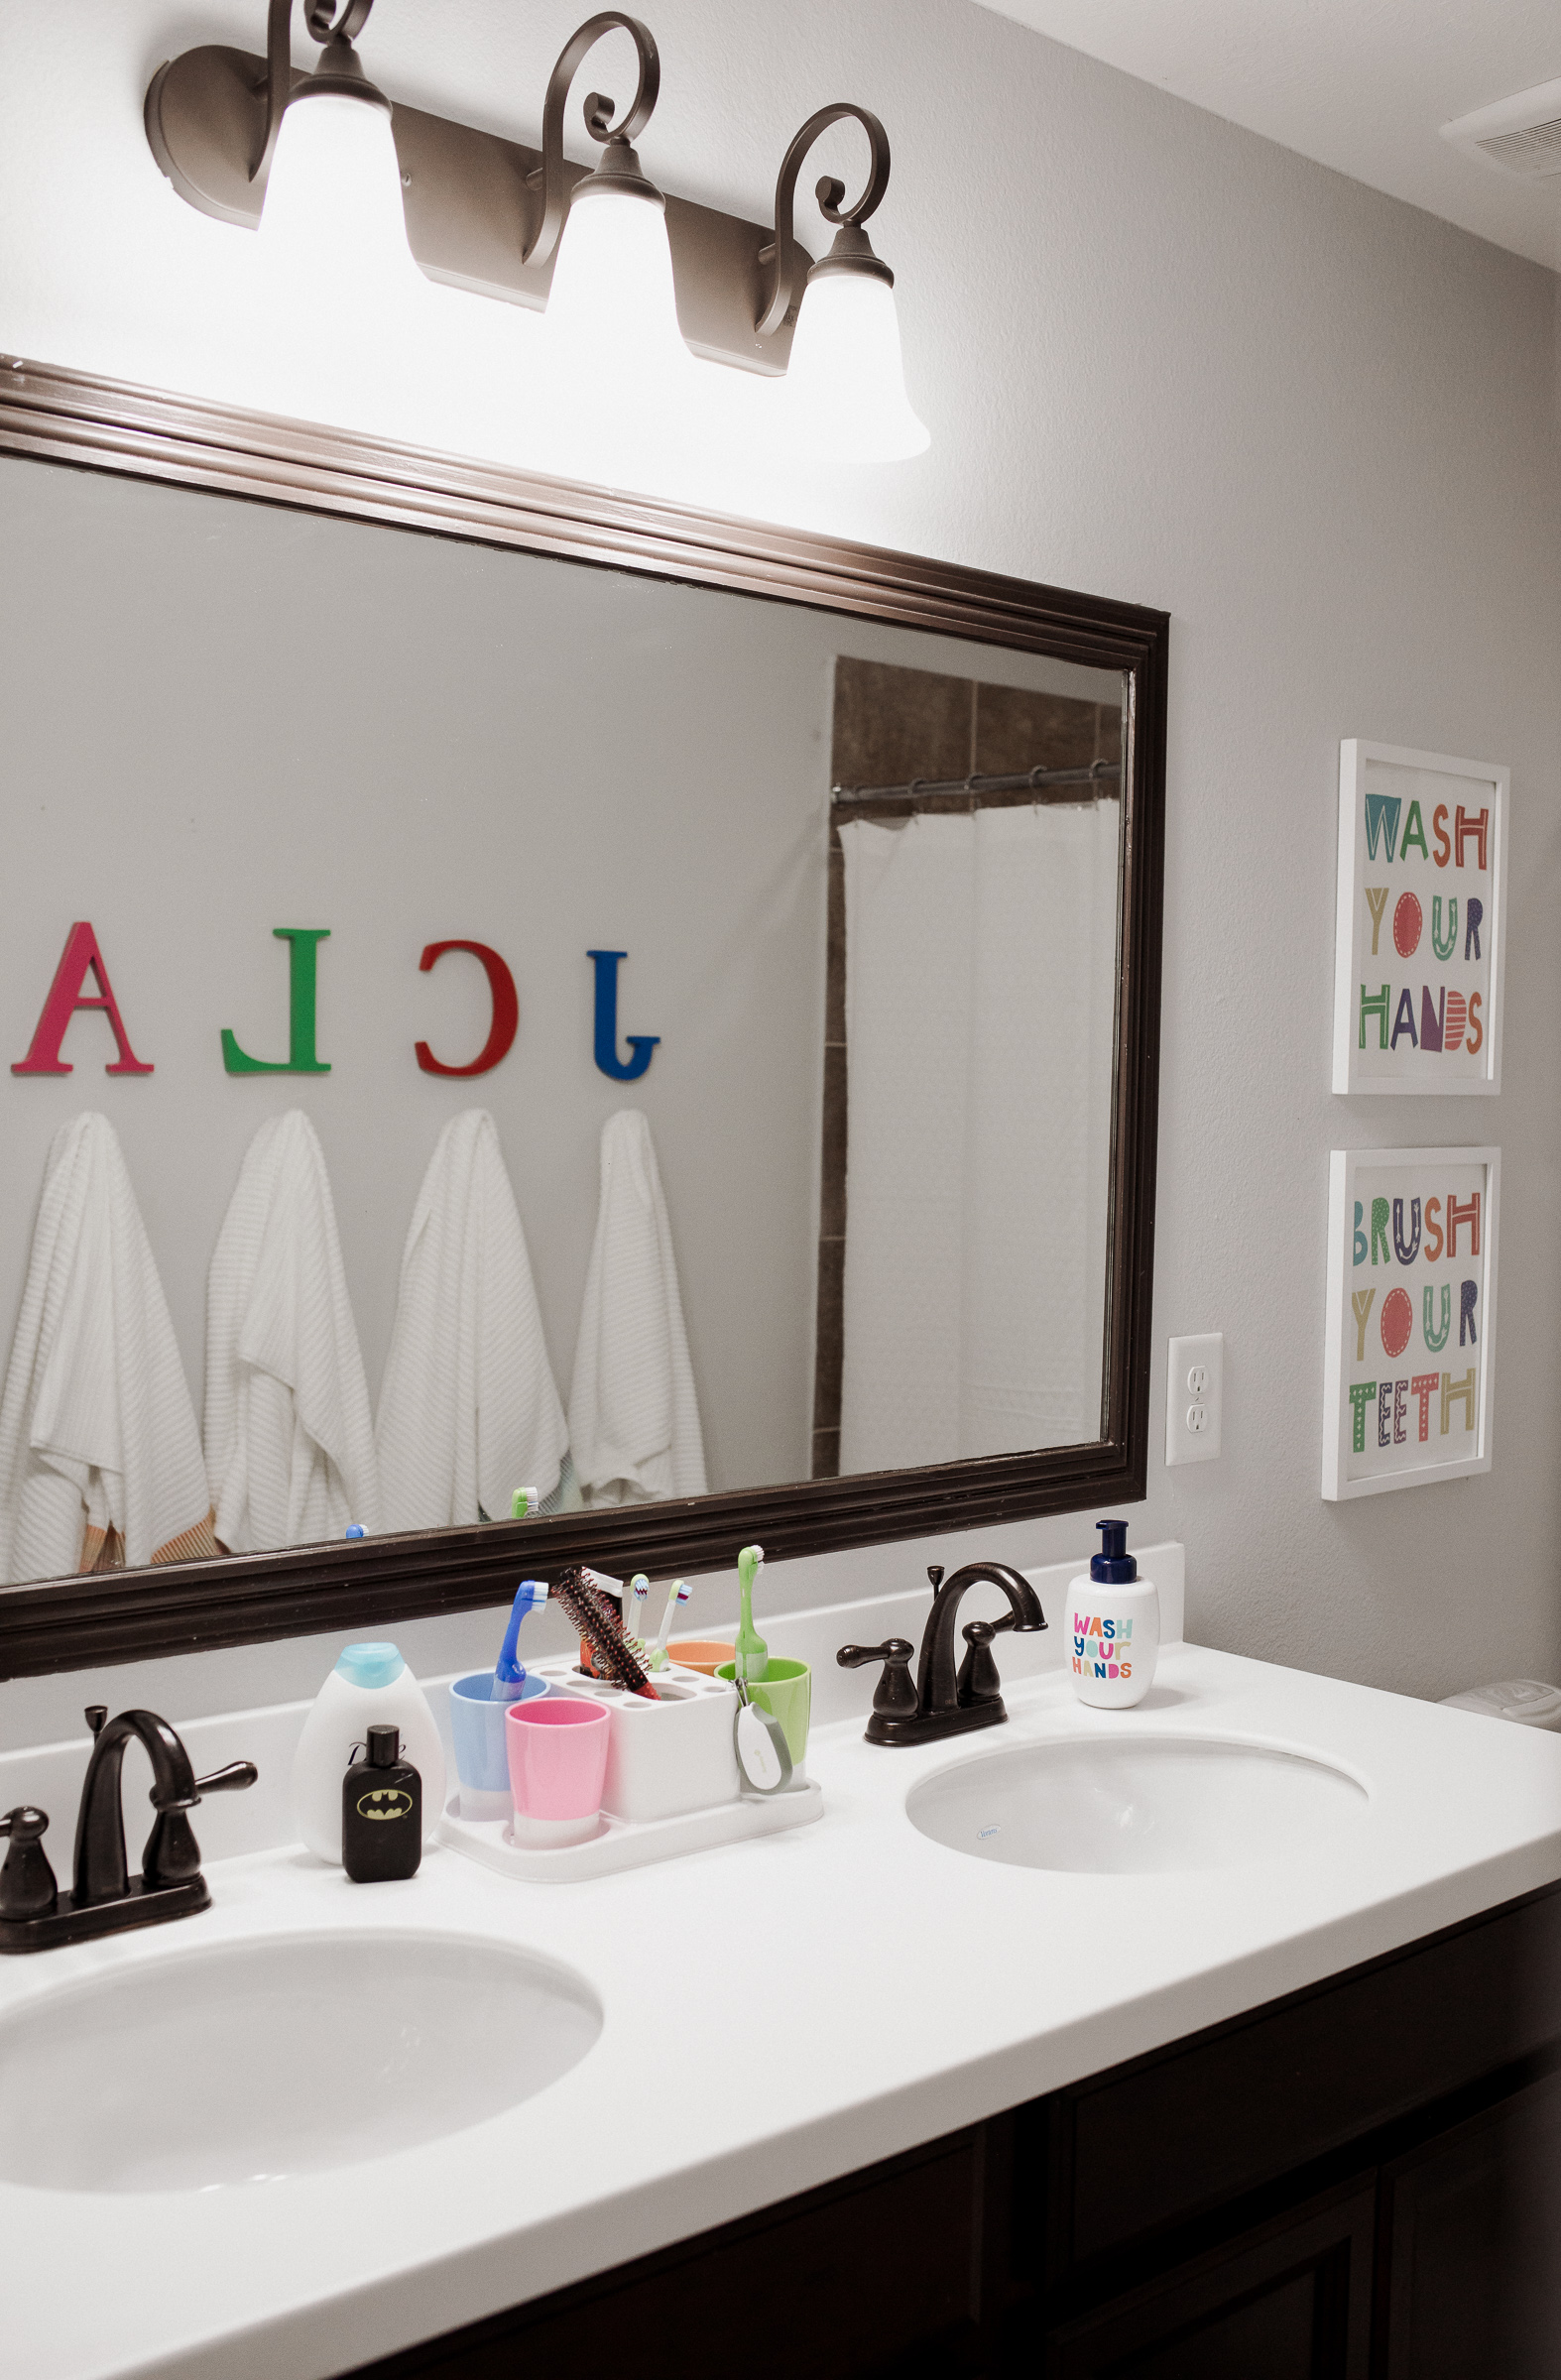 Houston lifestyle blogger Uptown with Elly Brown shares their new simple, and easy Kids bathroom decor